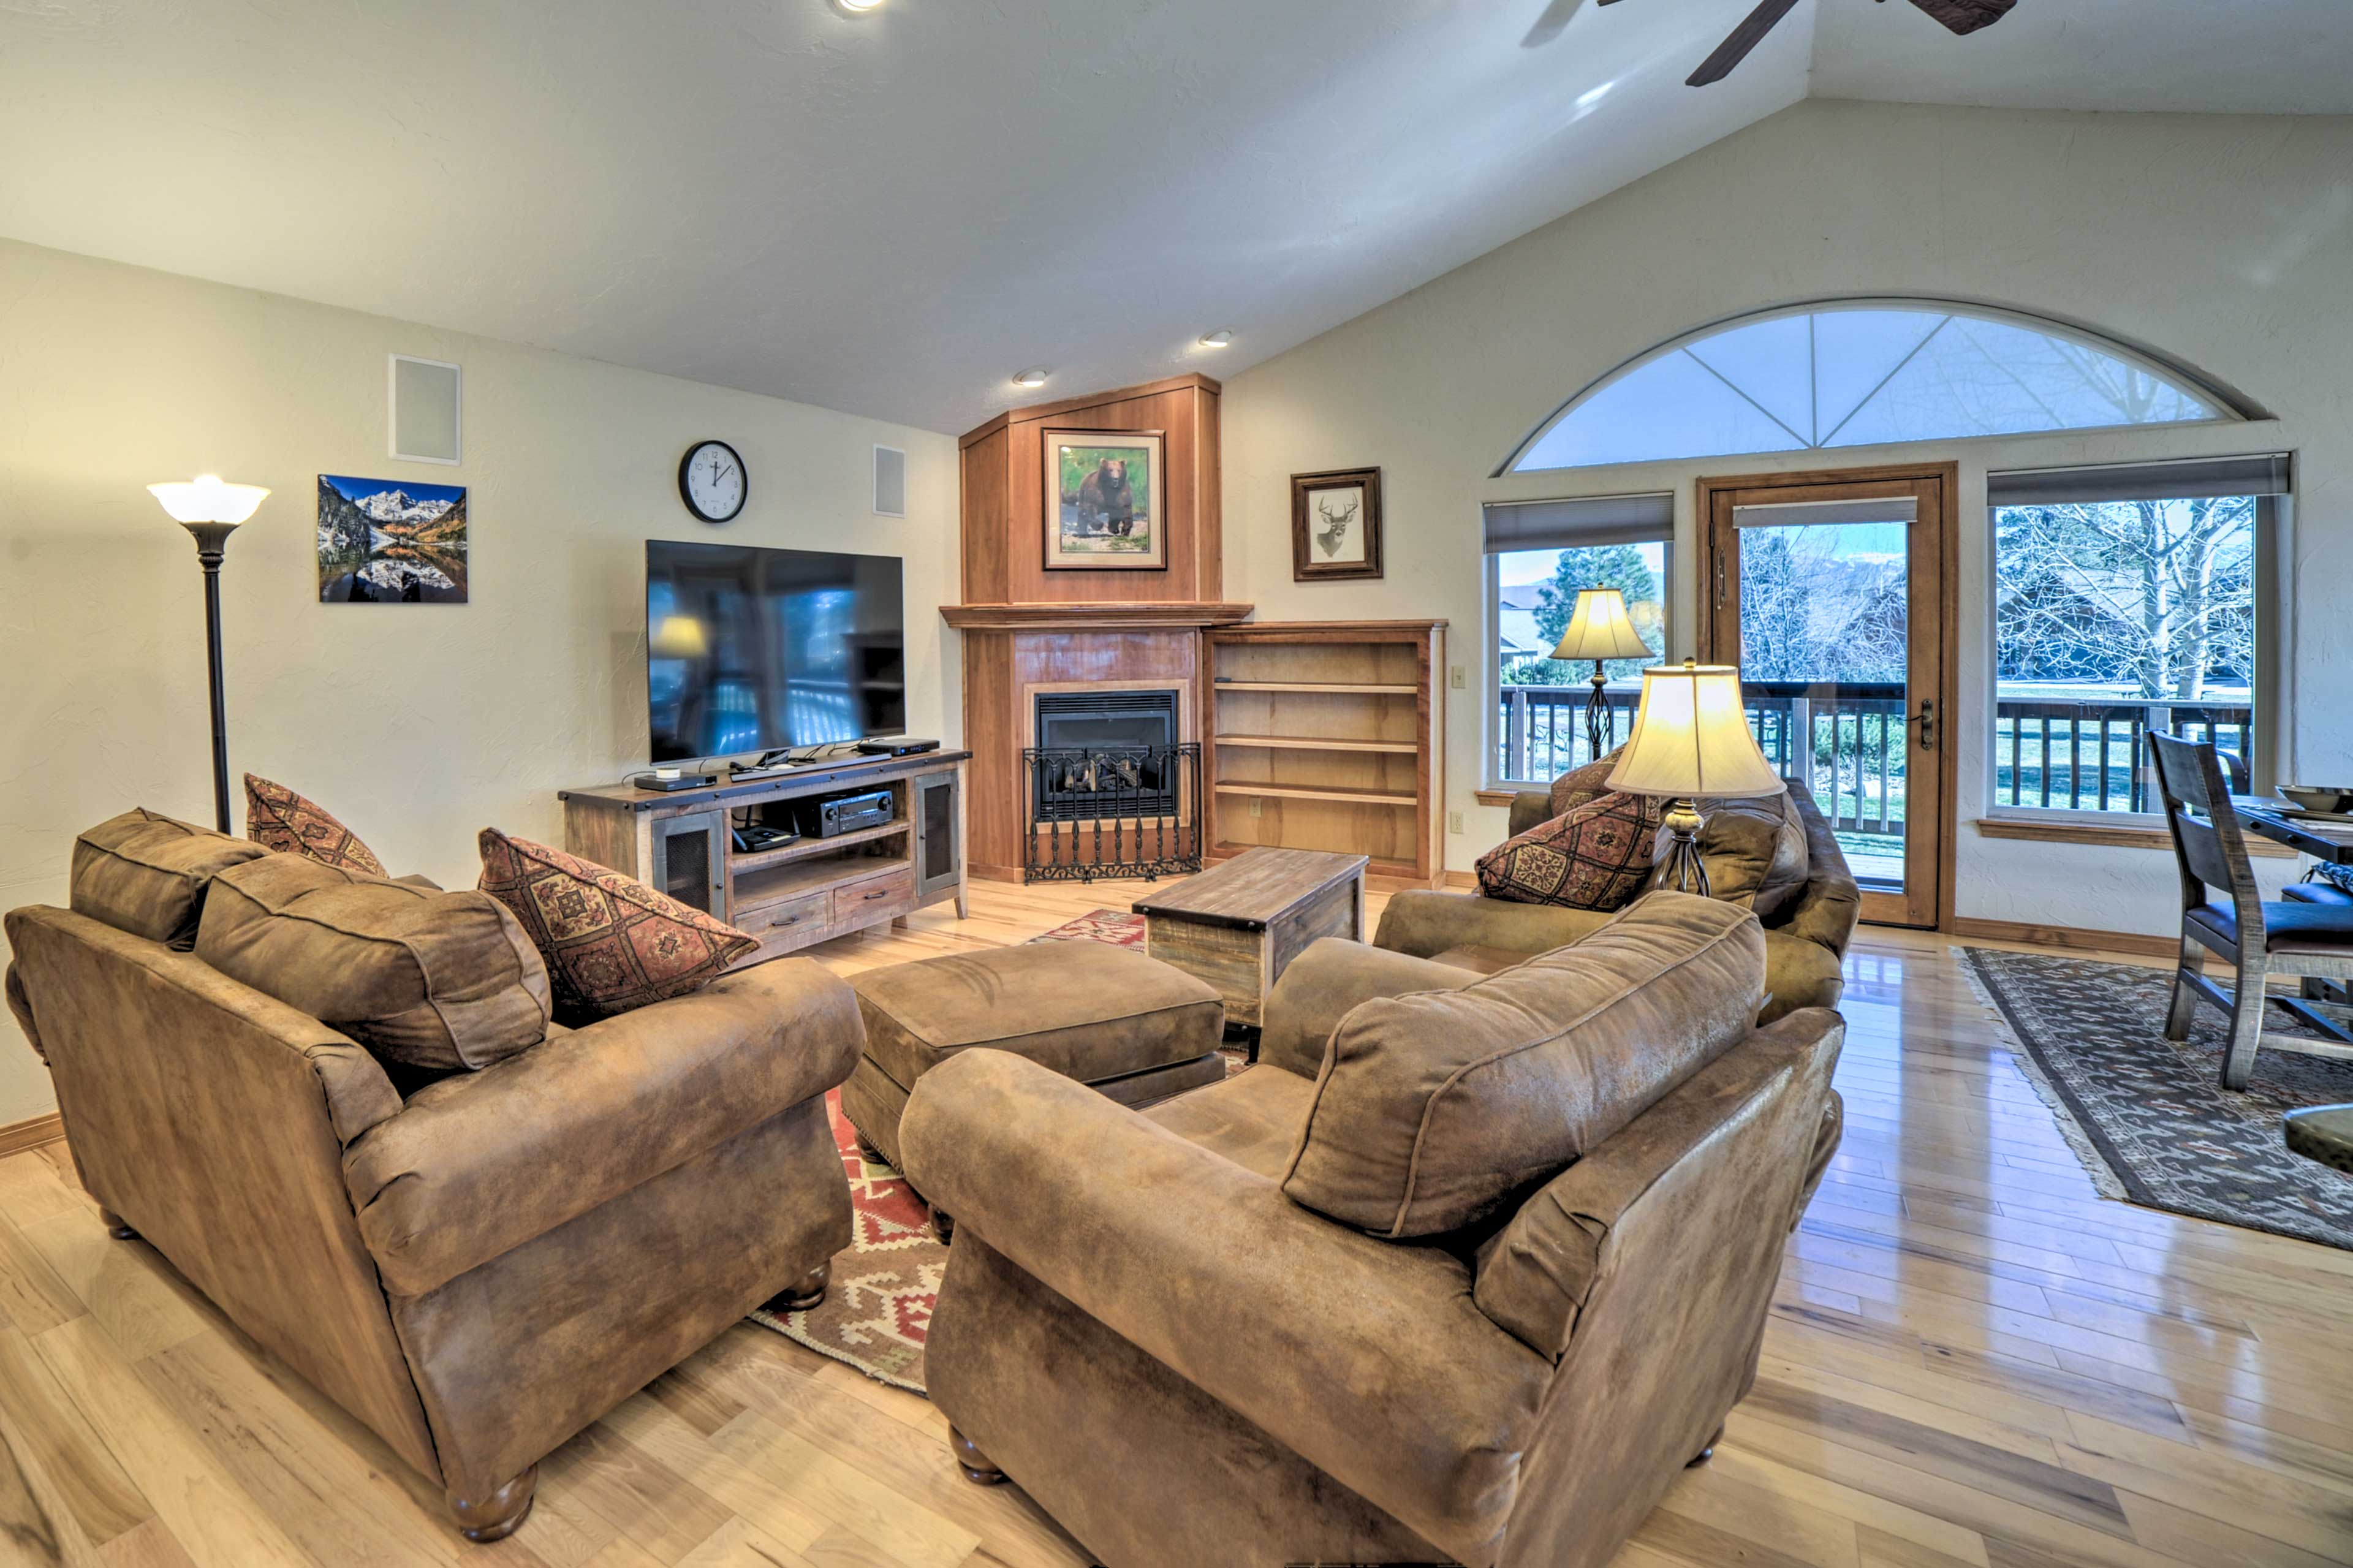 The beautiful home has 2 bedrooms, 2.5 bathrooms, and sleeps 6 travelers.